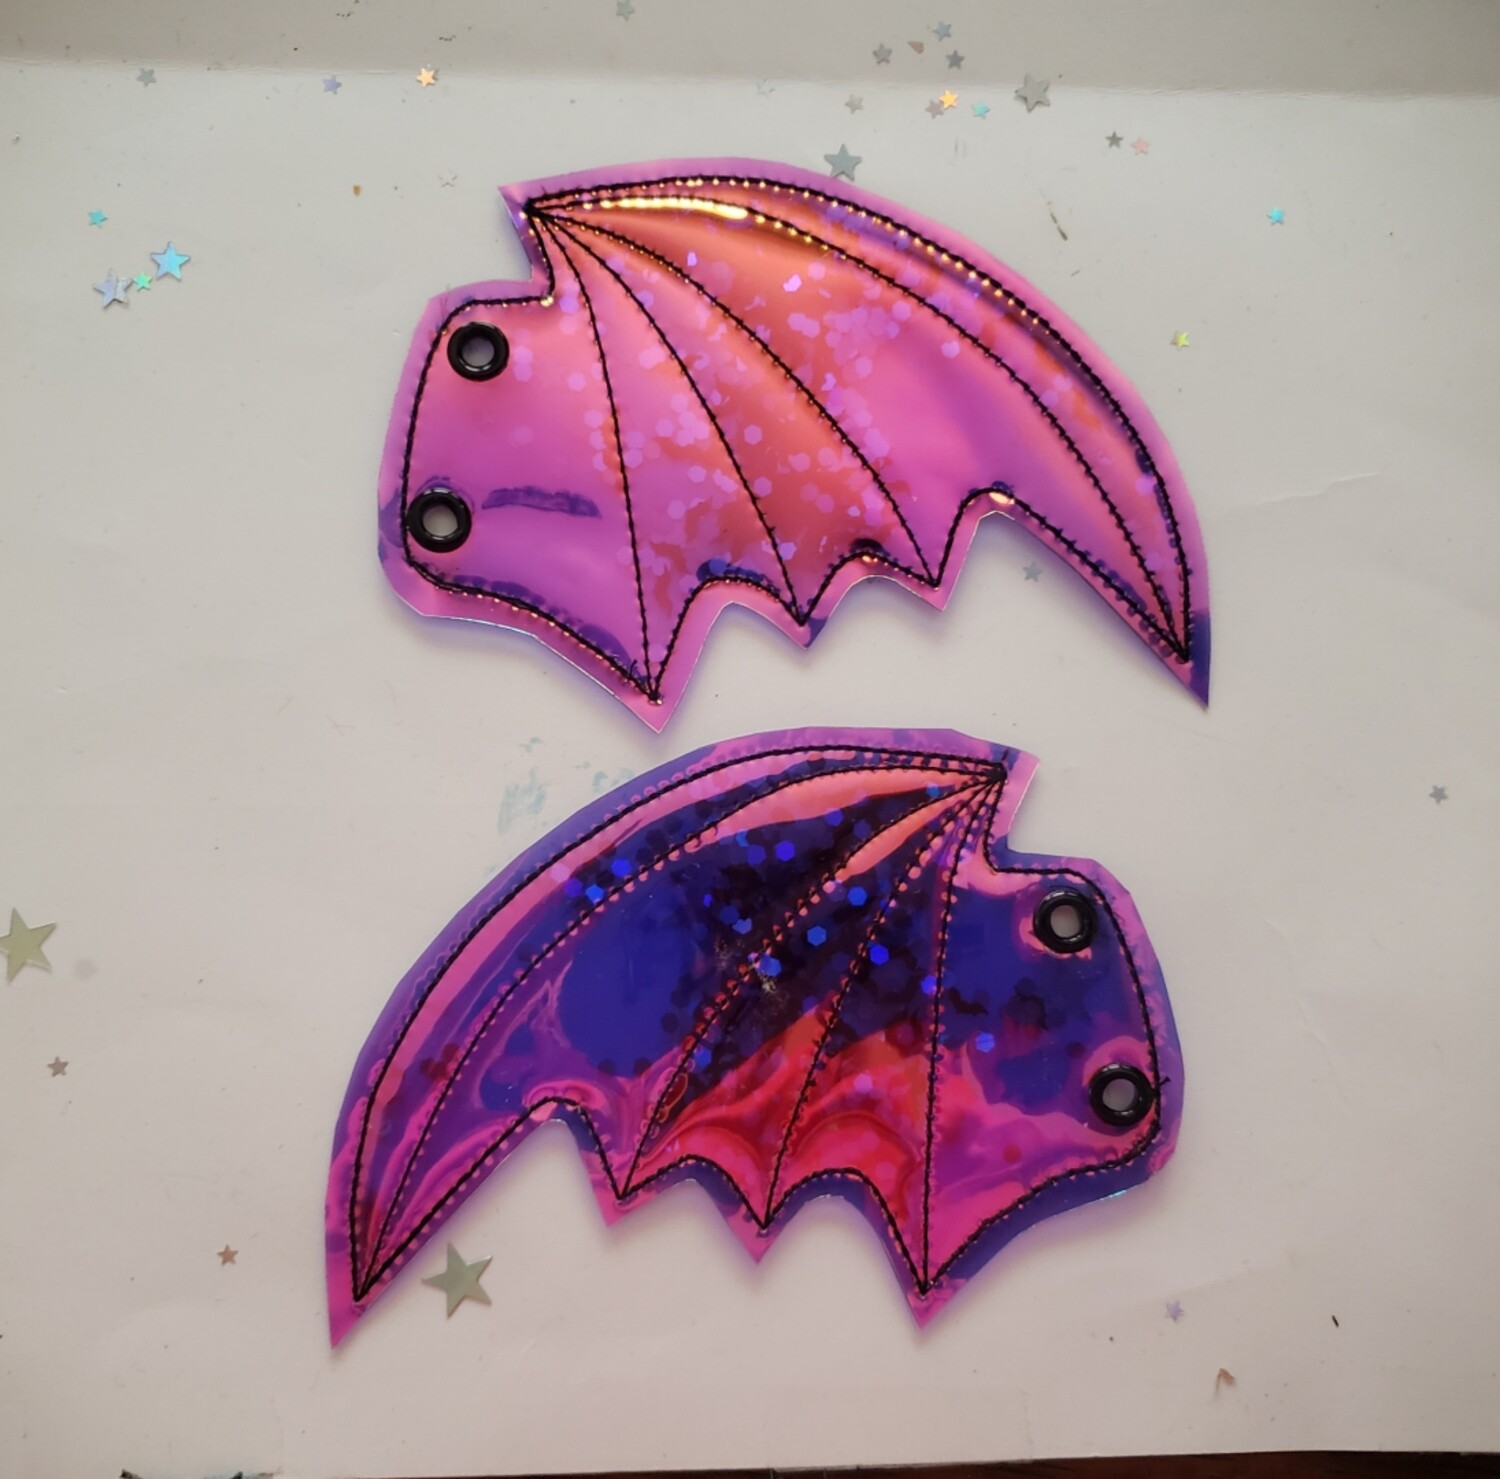 Bat transparent shoe wings with sequins rts